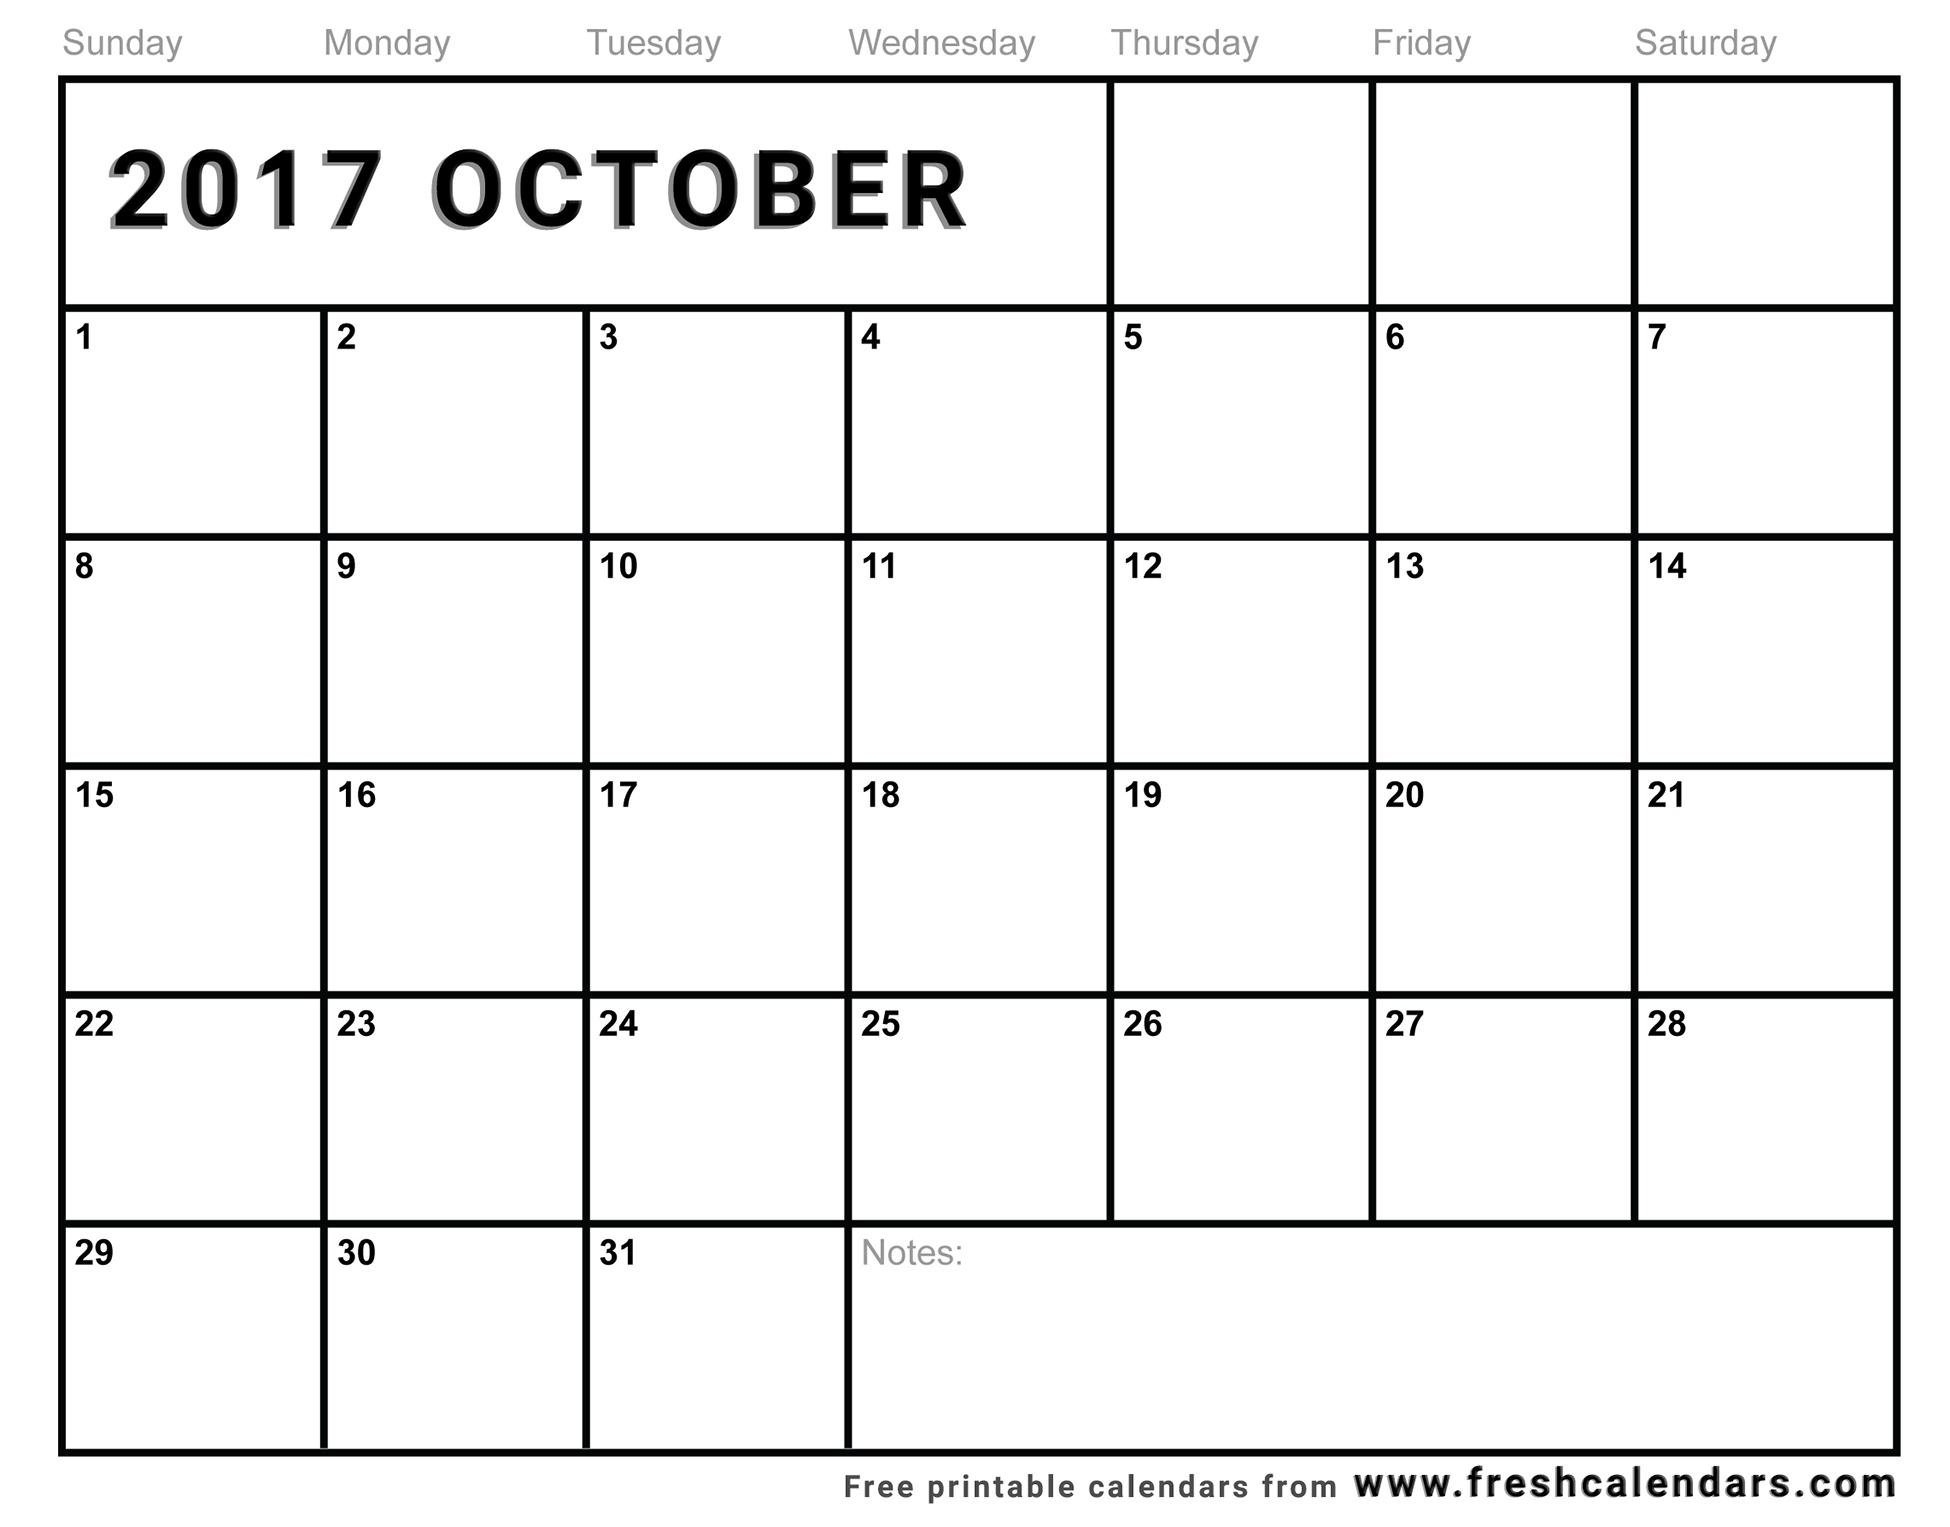 picture regarding Free Printable October Calendar titled 25+ Blank Printable Oct 2017 Calendar Free of charge Templates